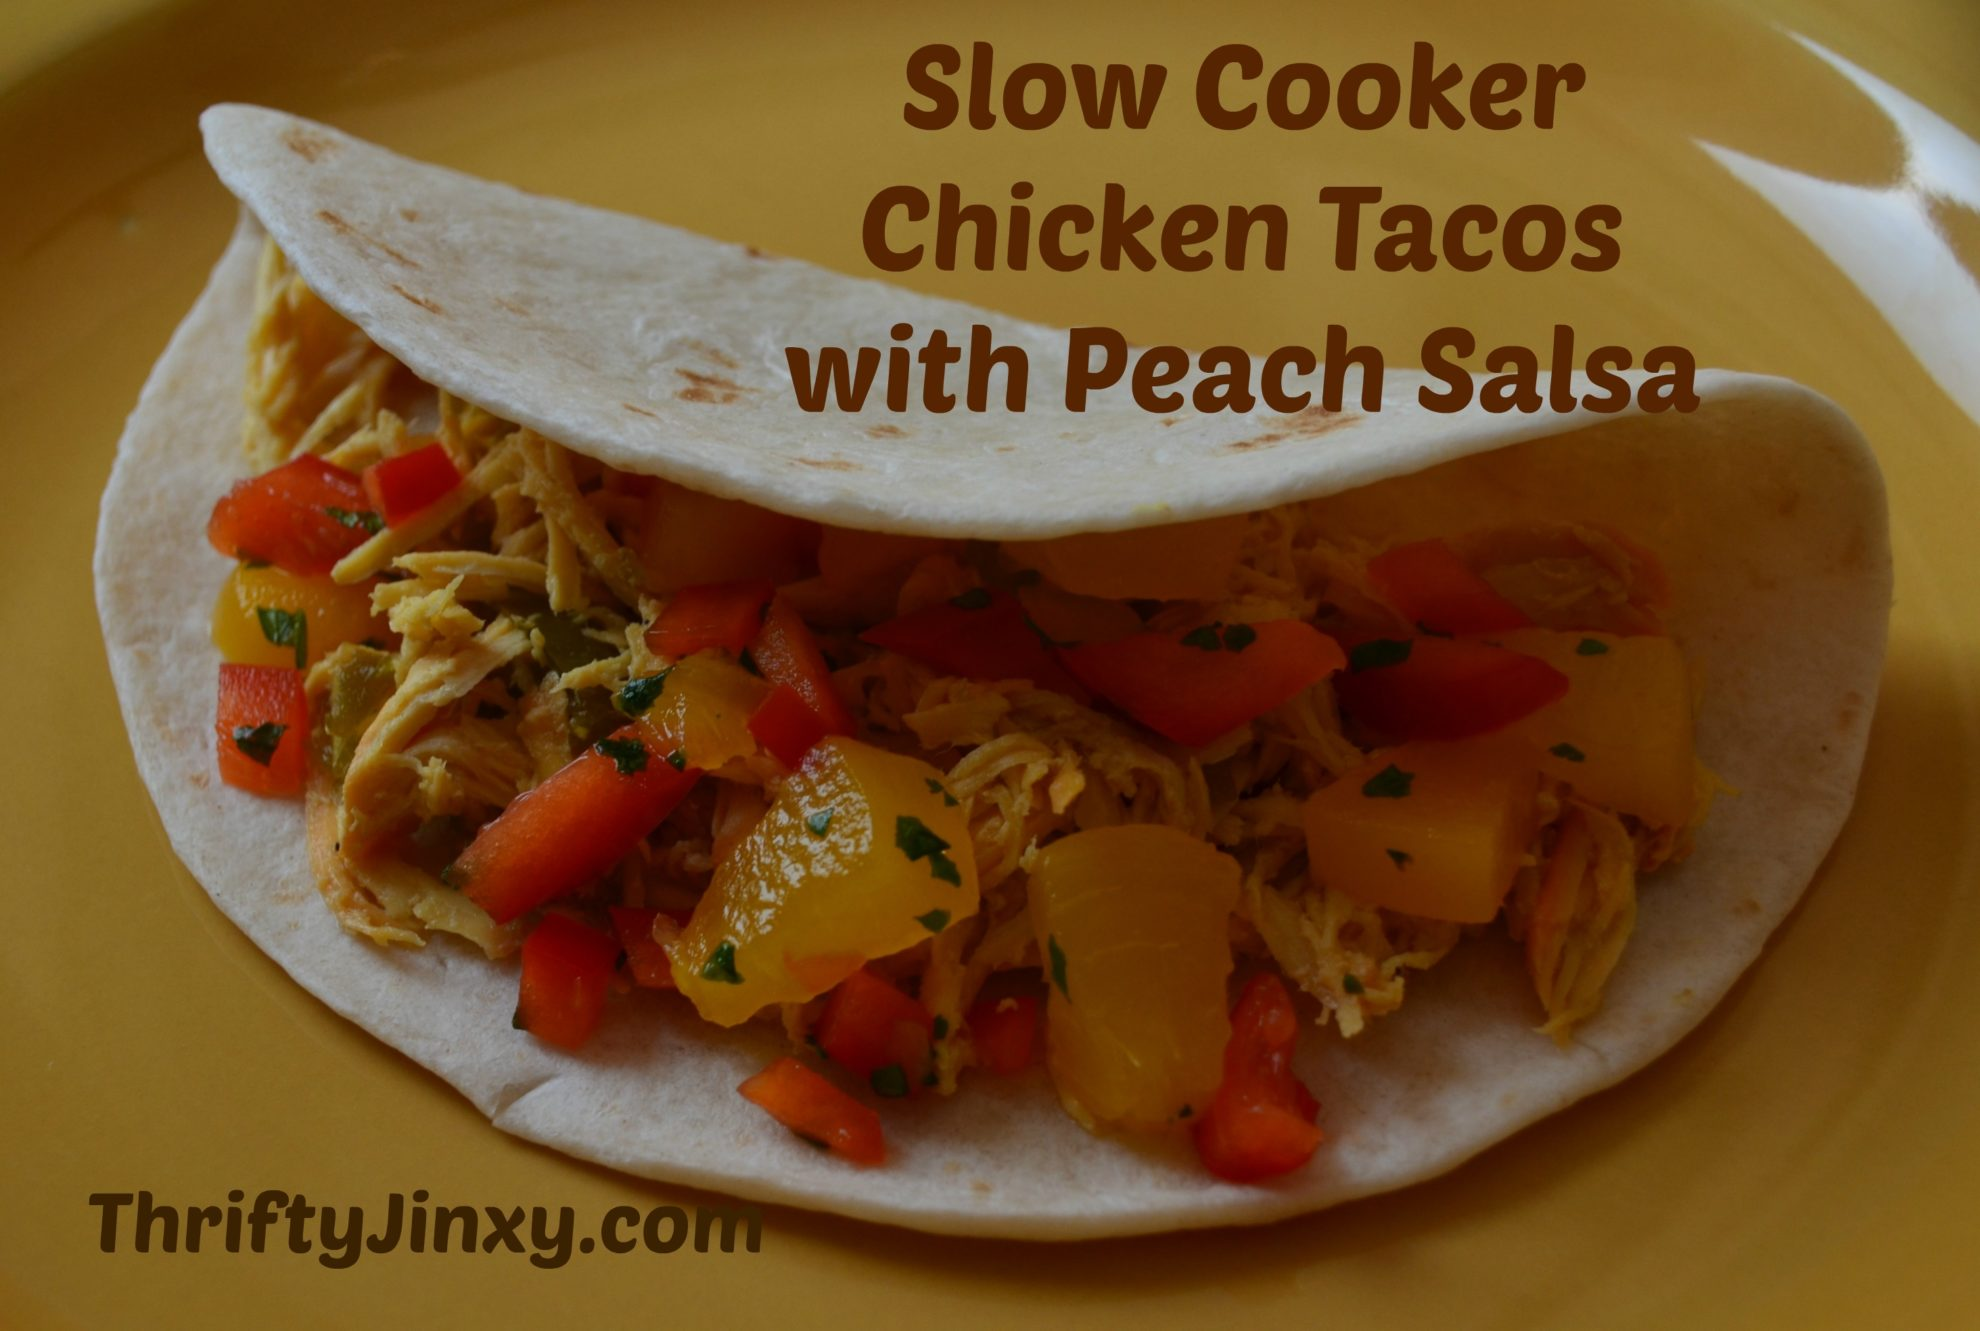 Slow Cooker Chicken Tacos with Peach Salsa Recipe